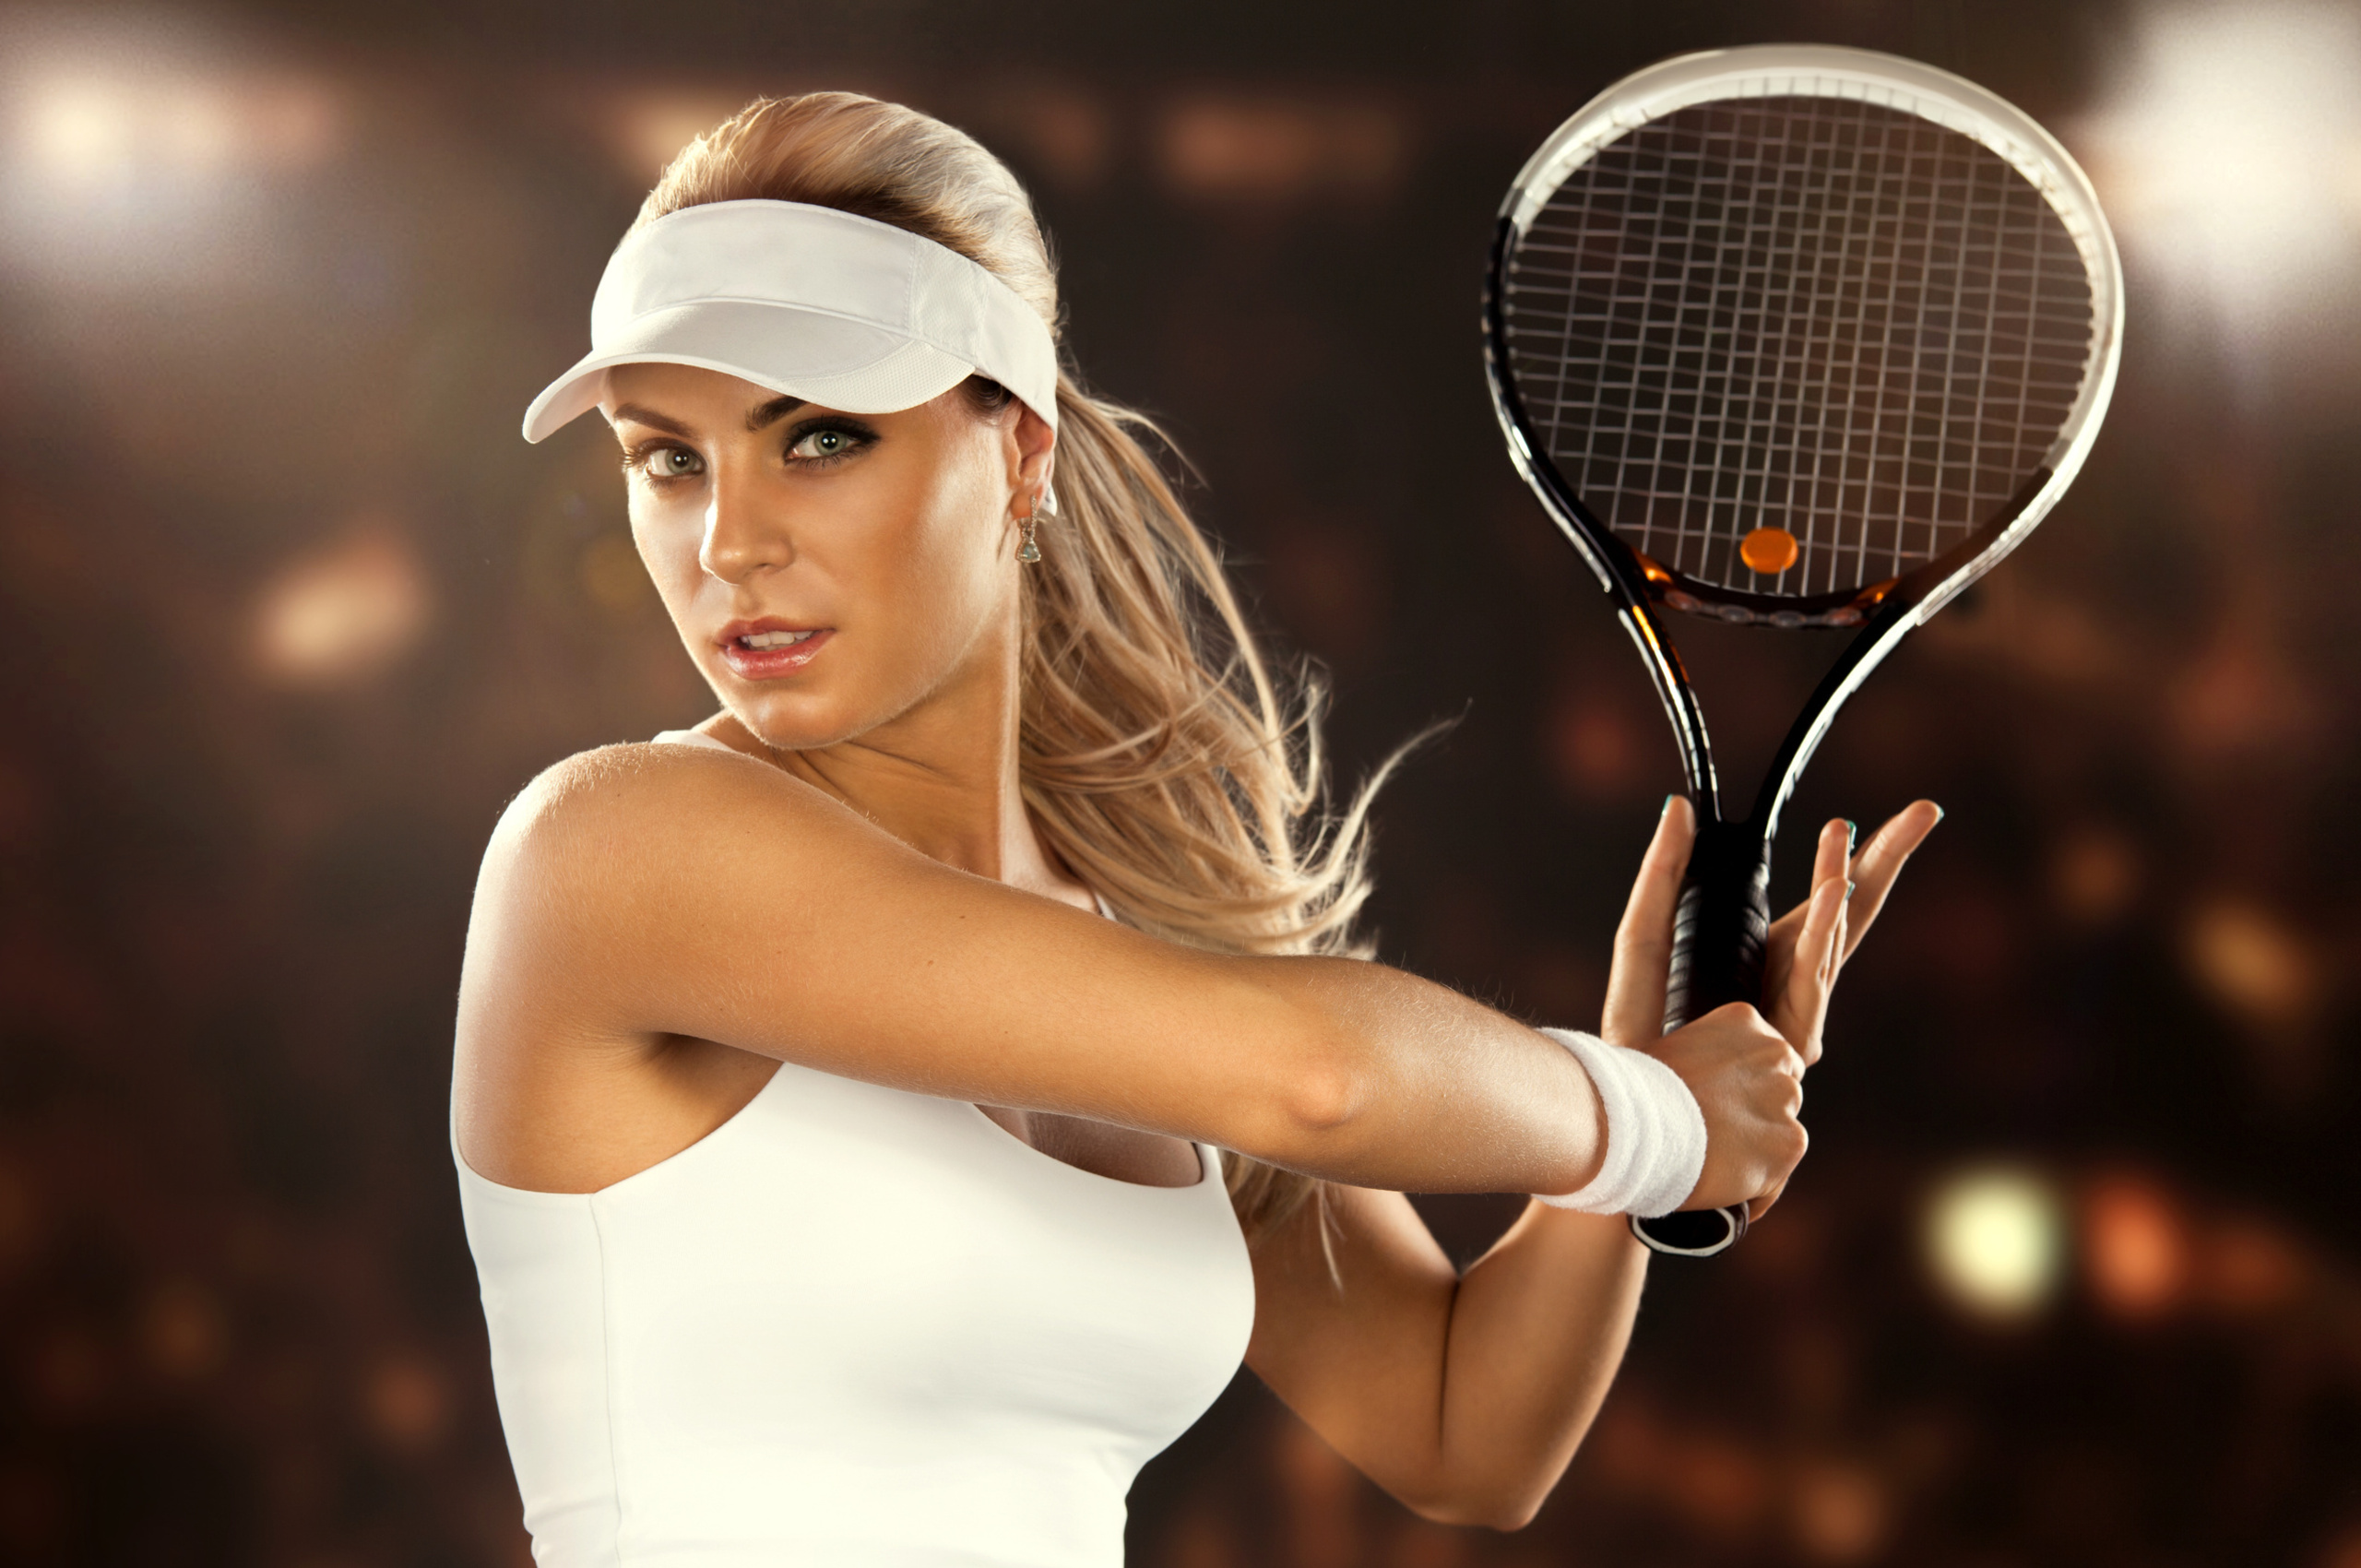 titillating tennis player can't believe the size of his racket  85438